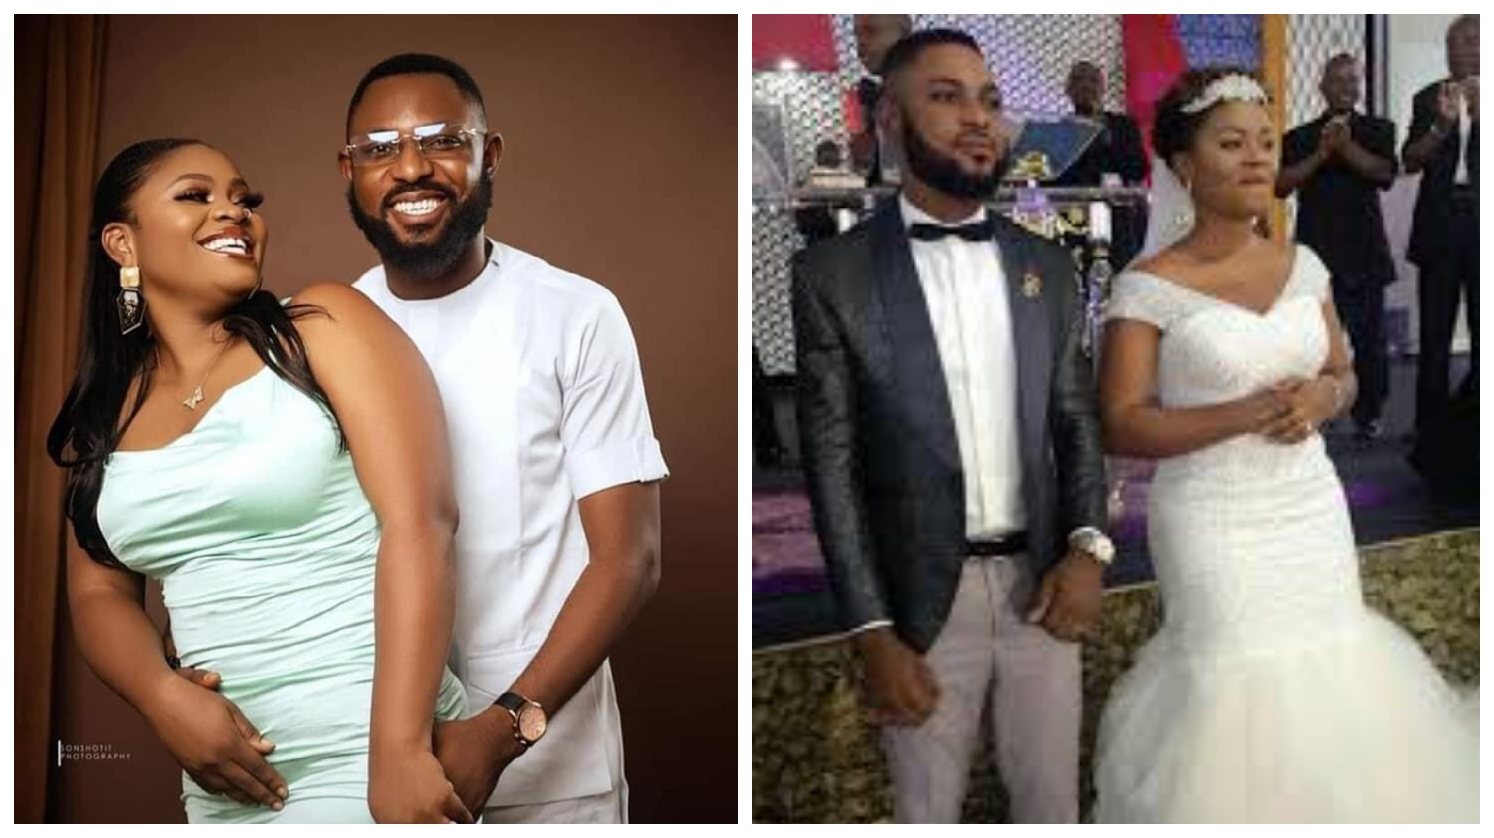 BBNaija: Tega reveals how she found out her husband was cheating in their matrimonial home - Read Here